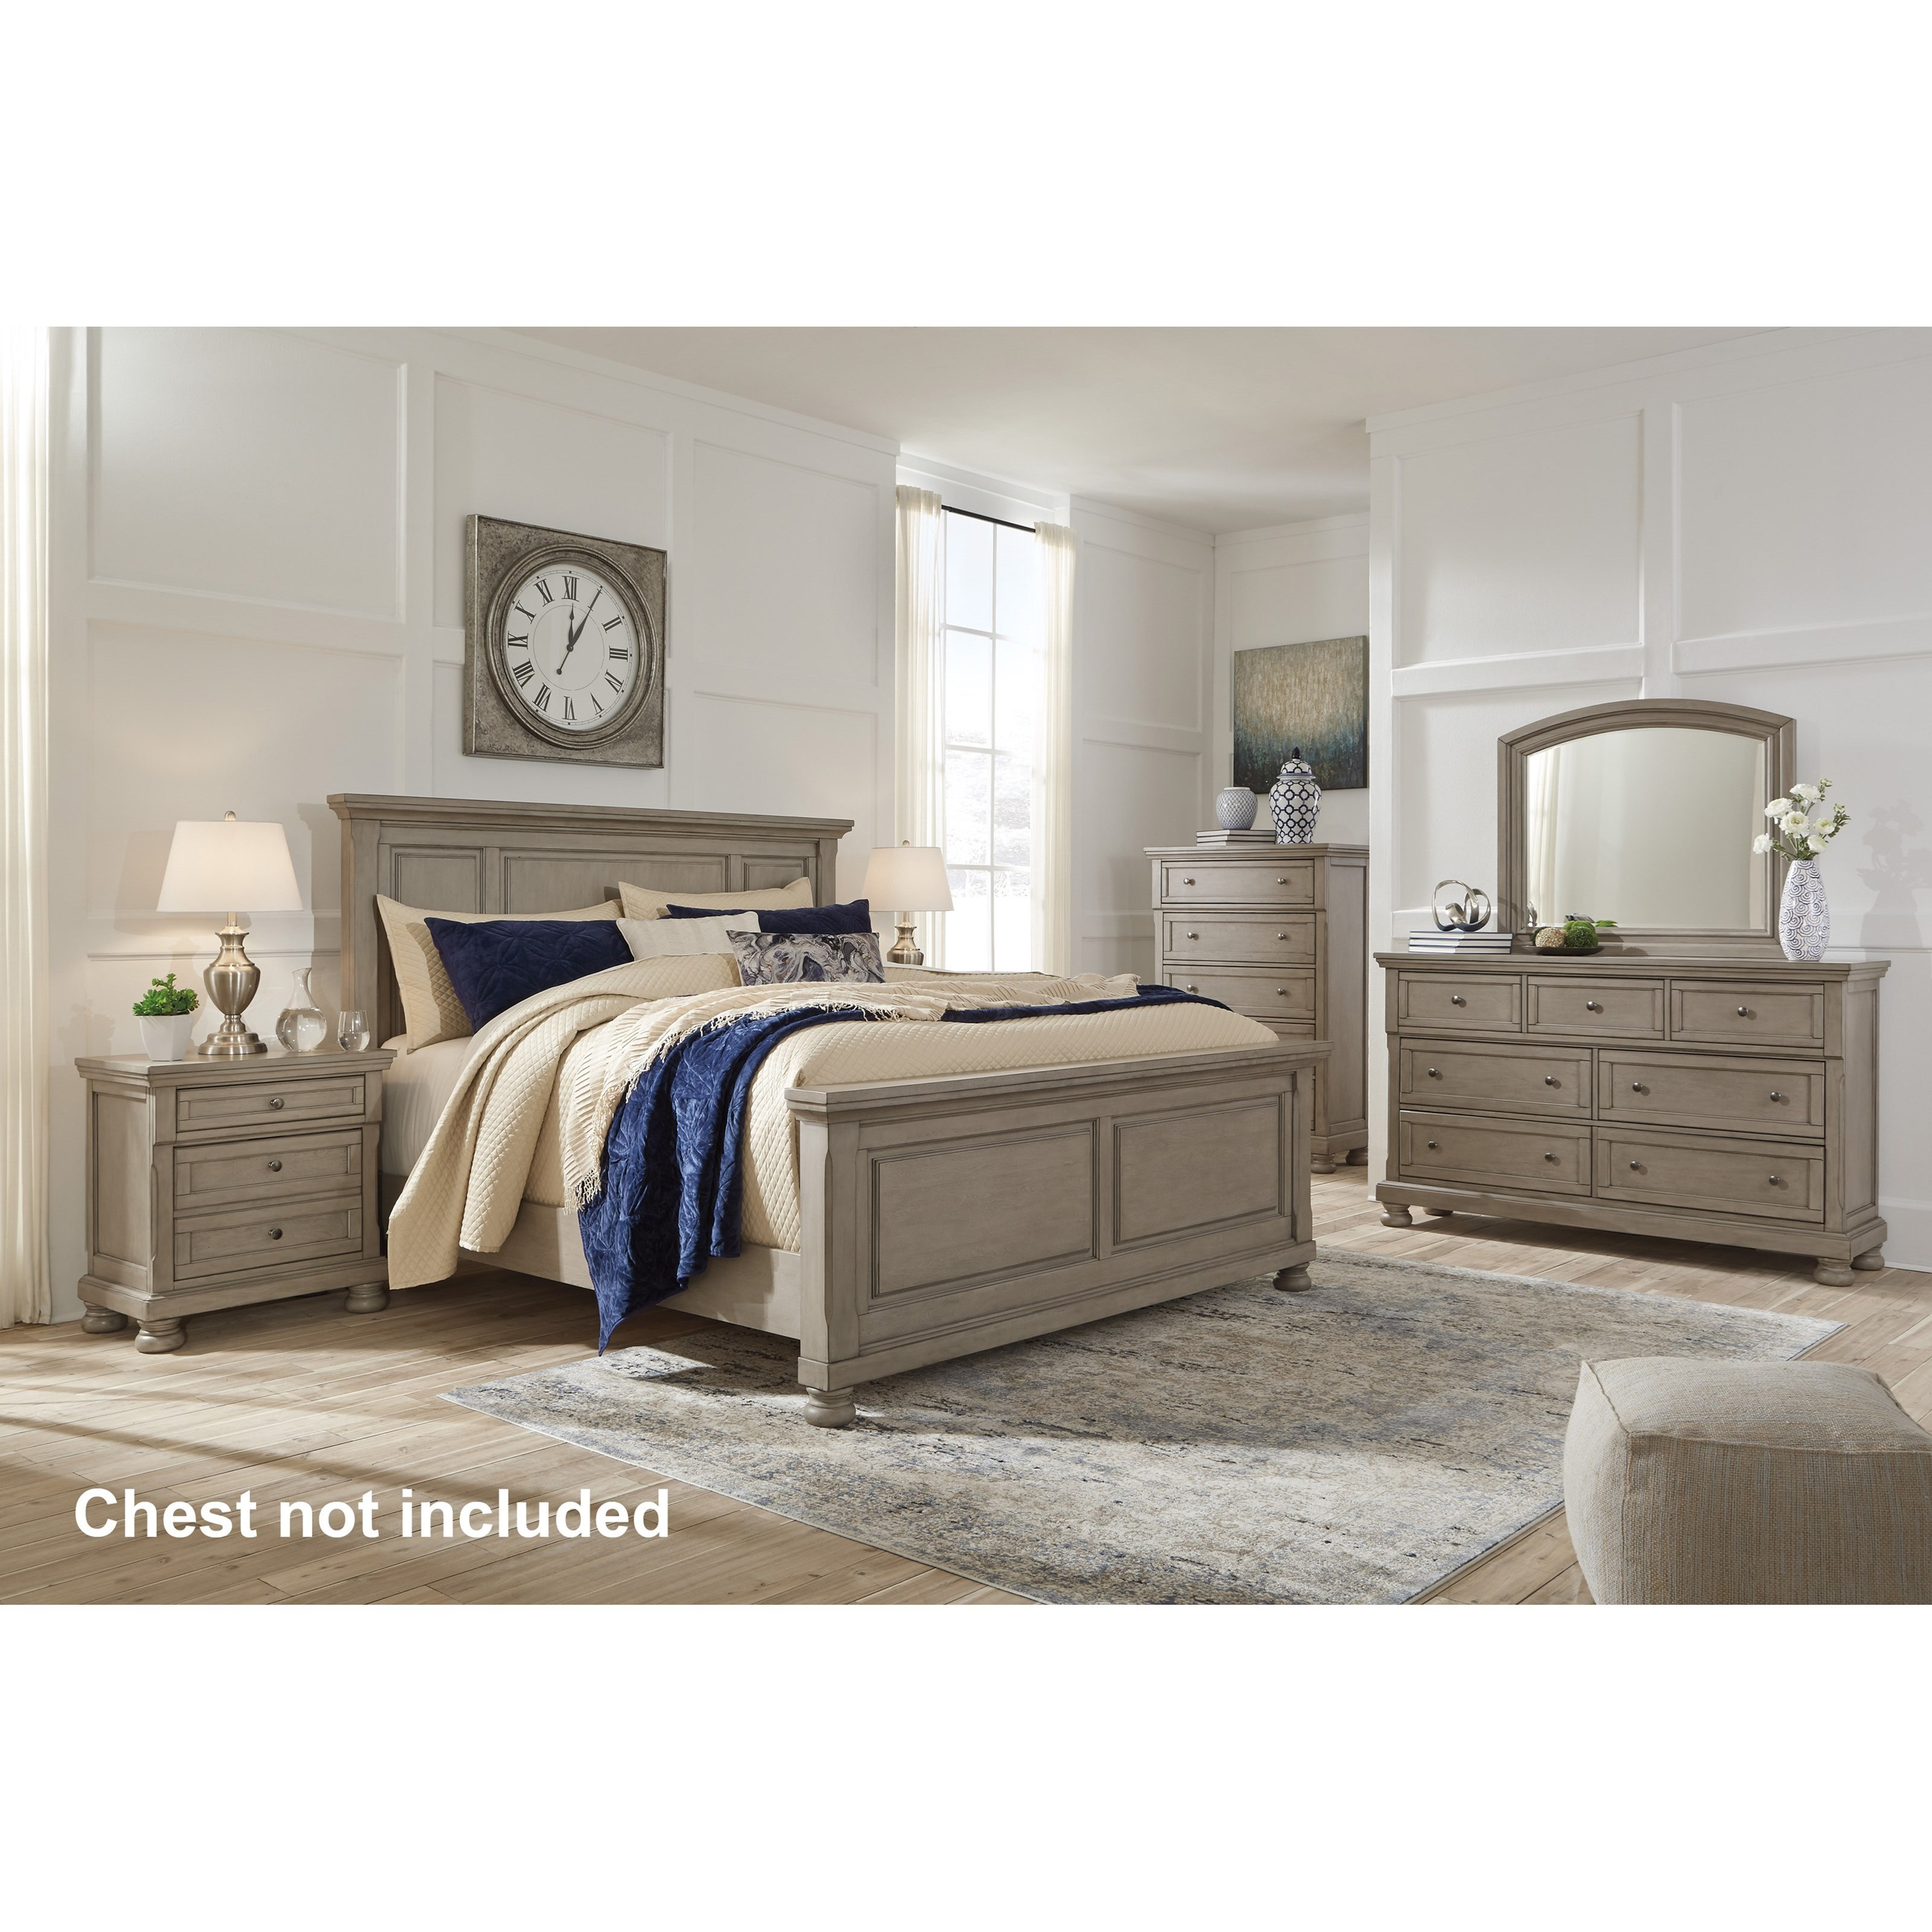 Lettner King Bedroom Group by Signature Design by Ashley at Beck's Furniture